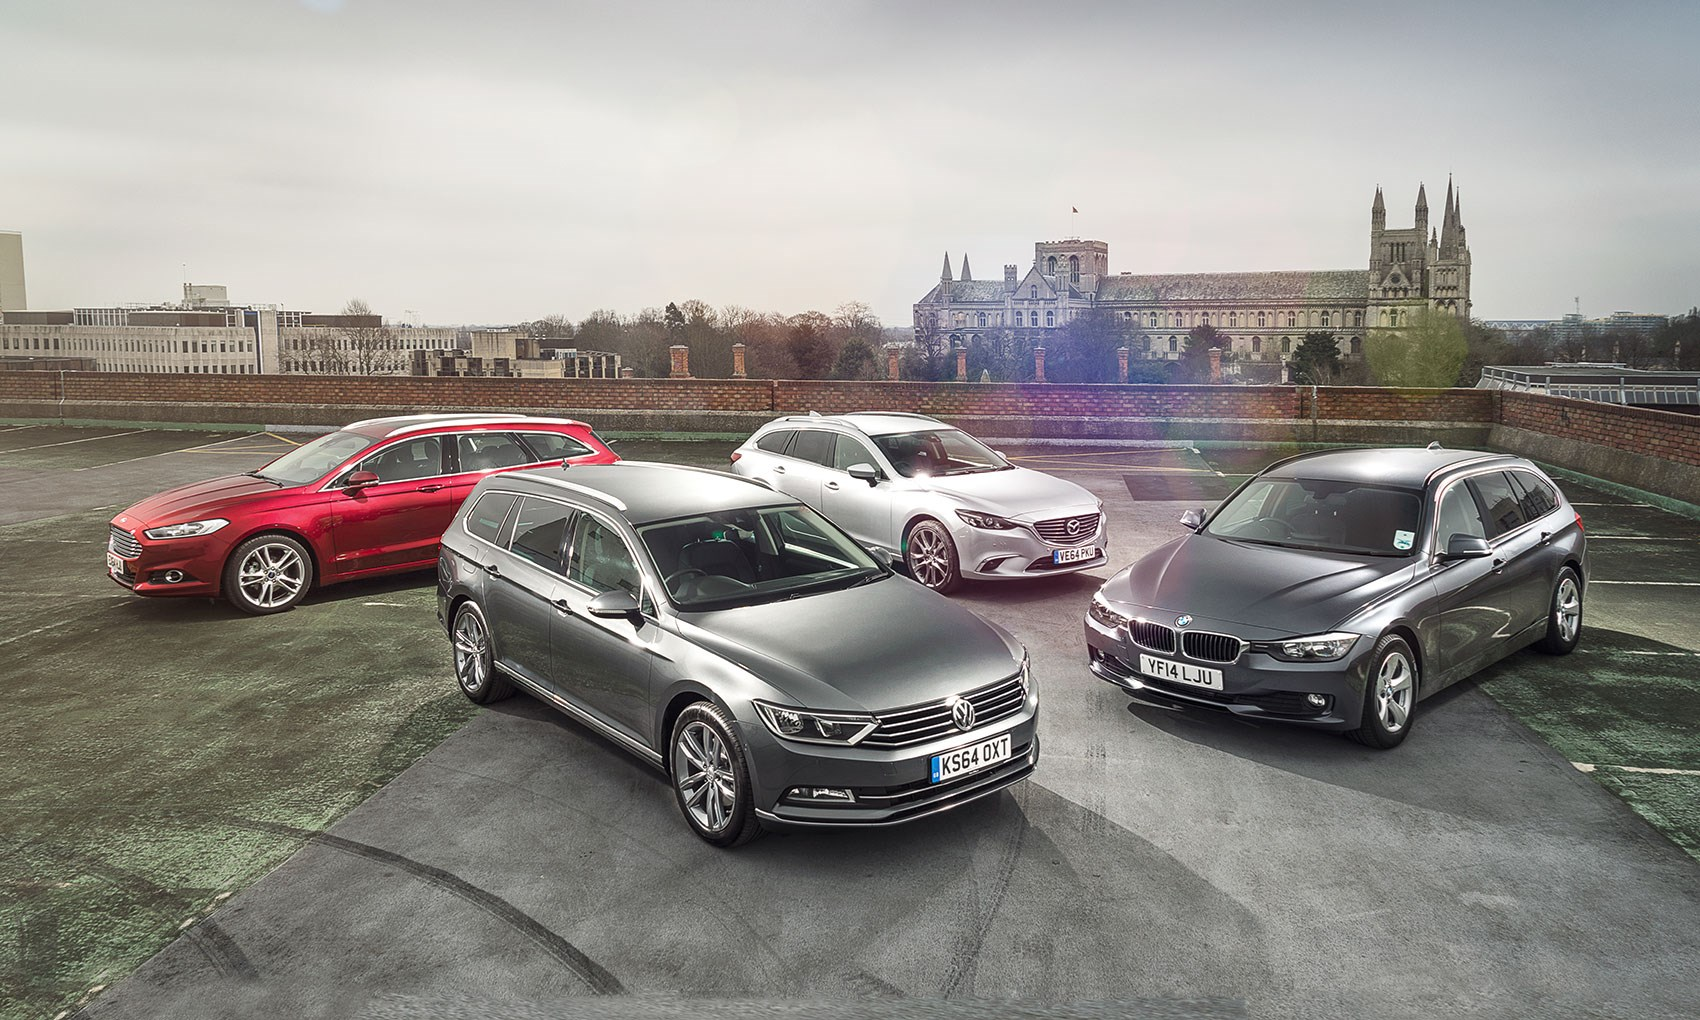 Vw Passat Estate Vs Ford Mondeo Vs Bmw 3 Series Touring Vs Mazda 6